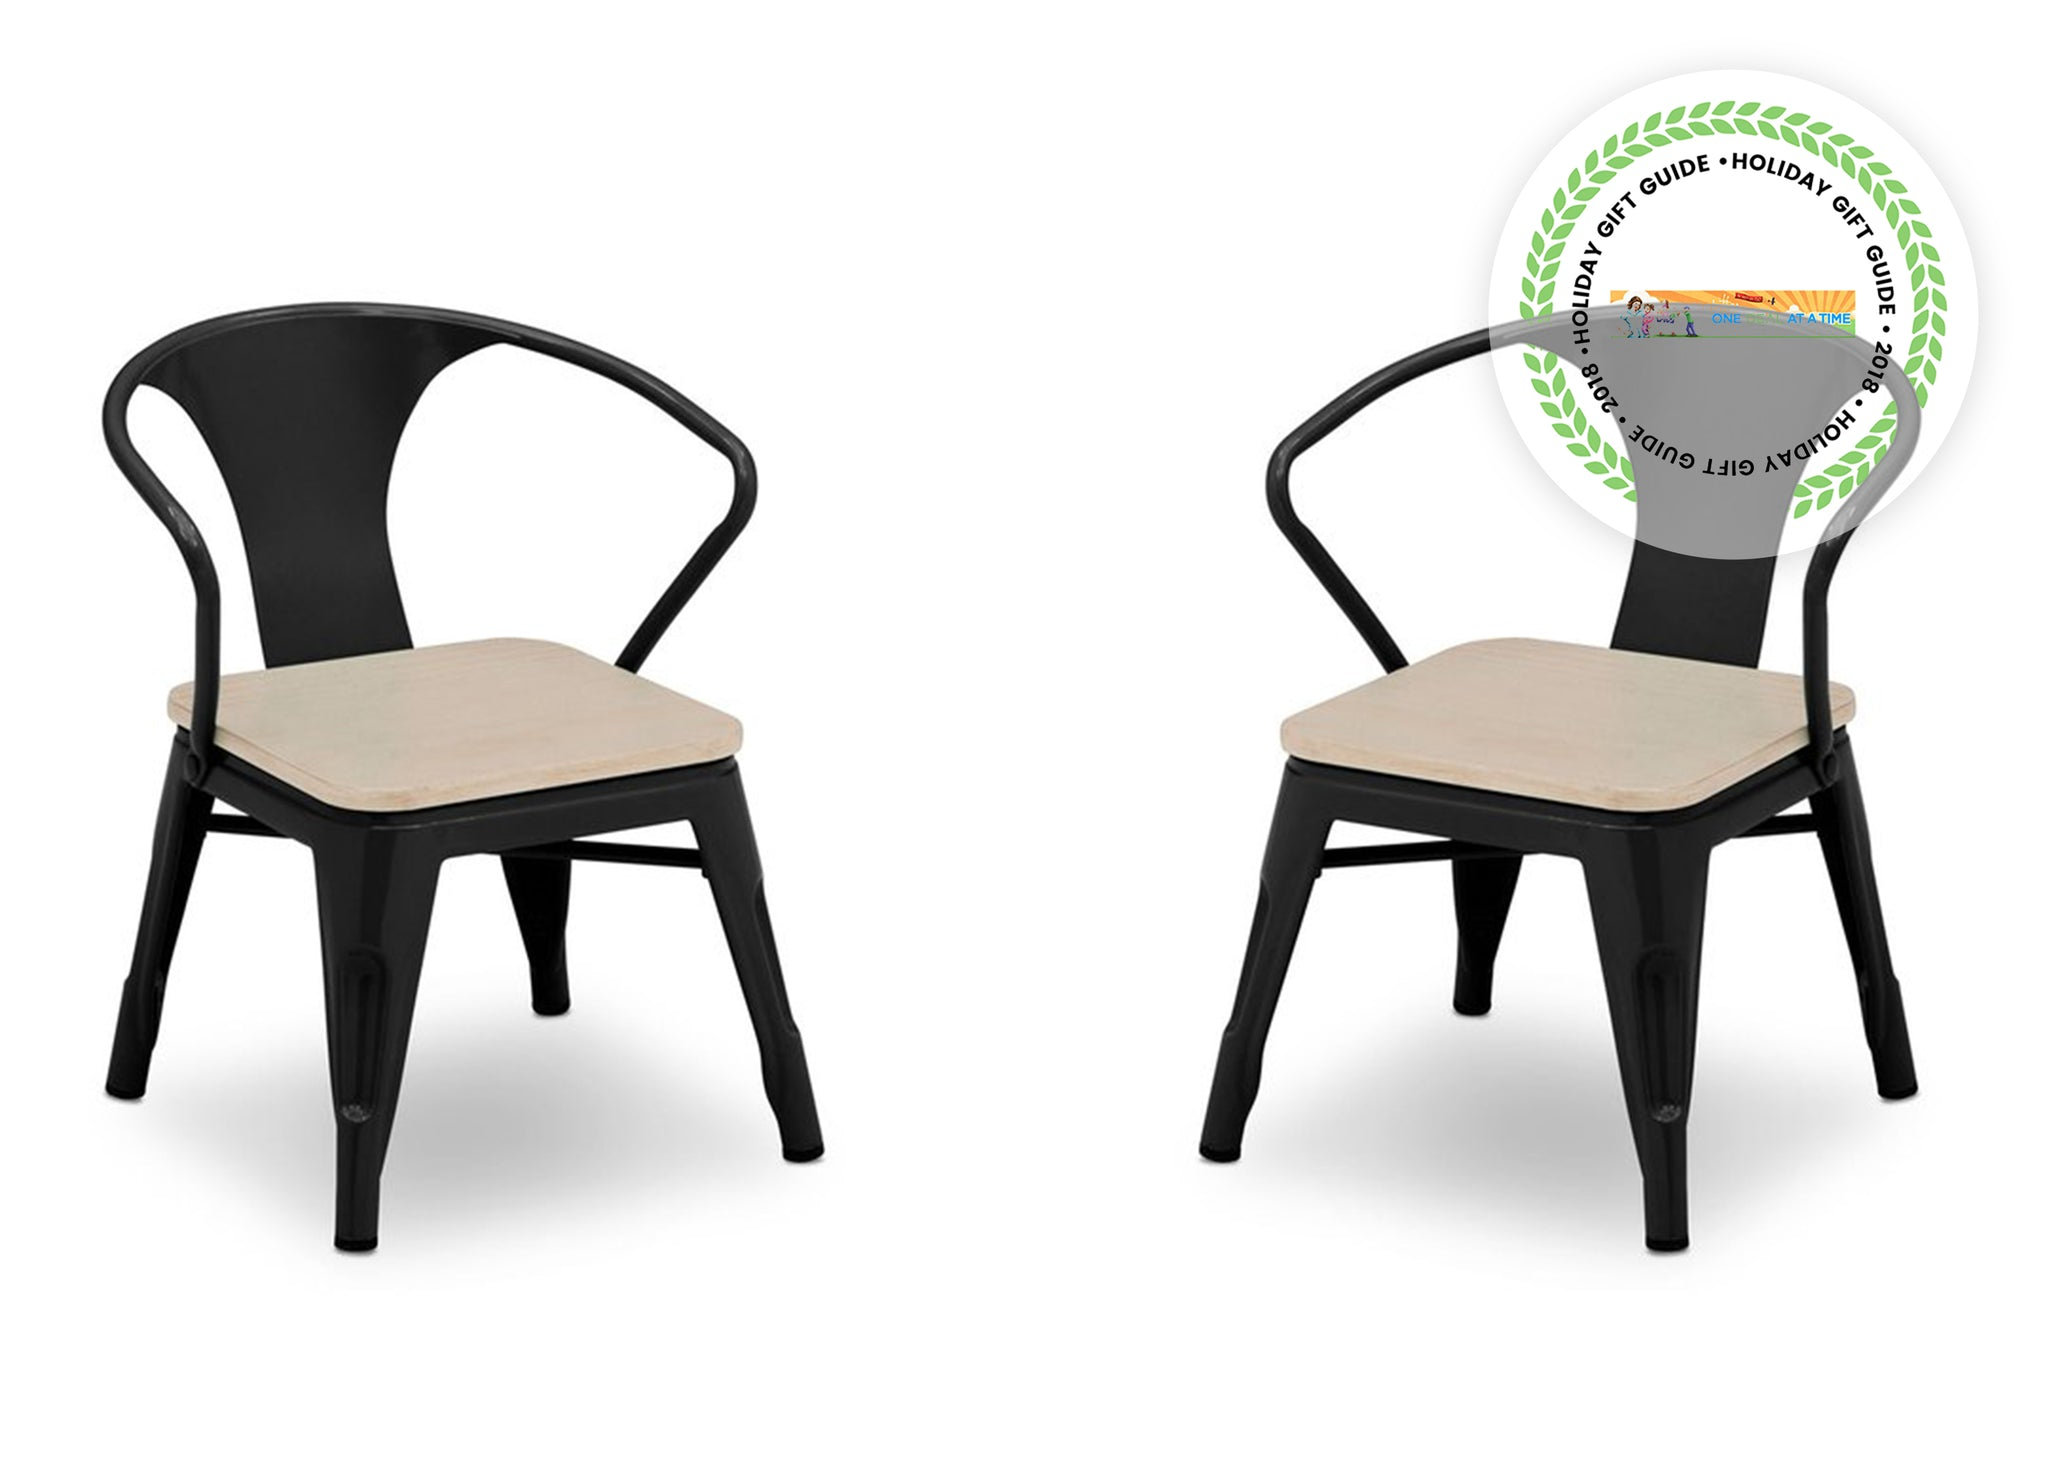 Delta Children Black with Driftwood (1312) Bistro 2-Piece Chair Set (560301), Chairs Silo a3a